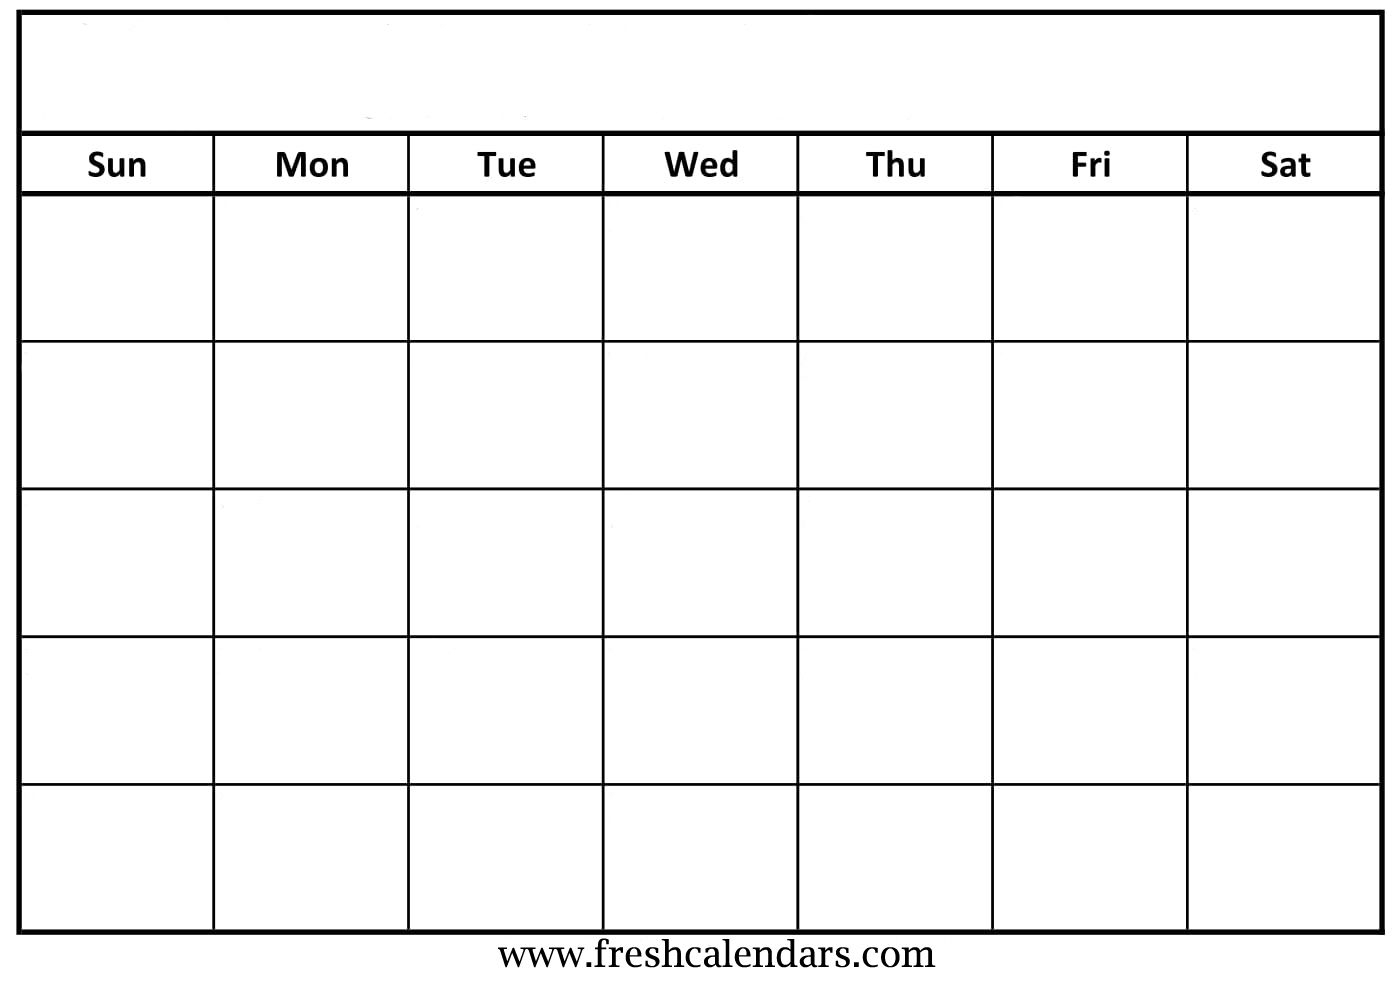 Printable Blank Calendar With Lines | Monthly Printable Calender in Blank Calendar With Lines